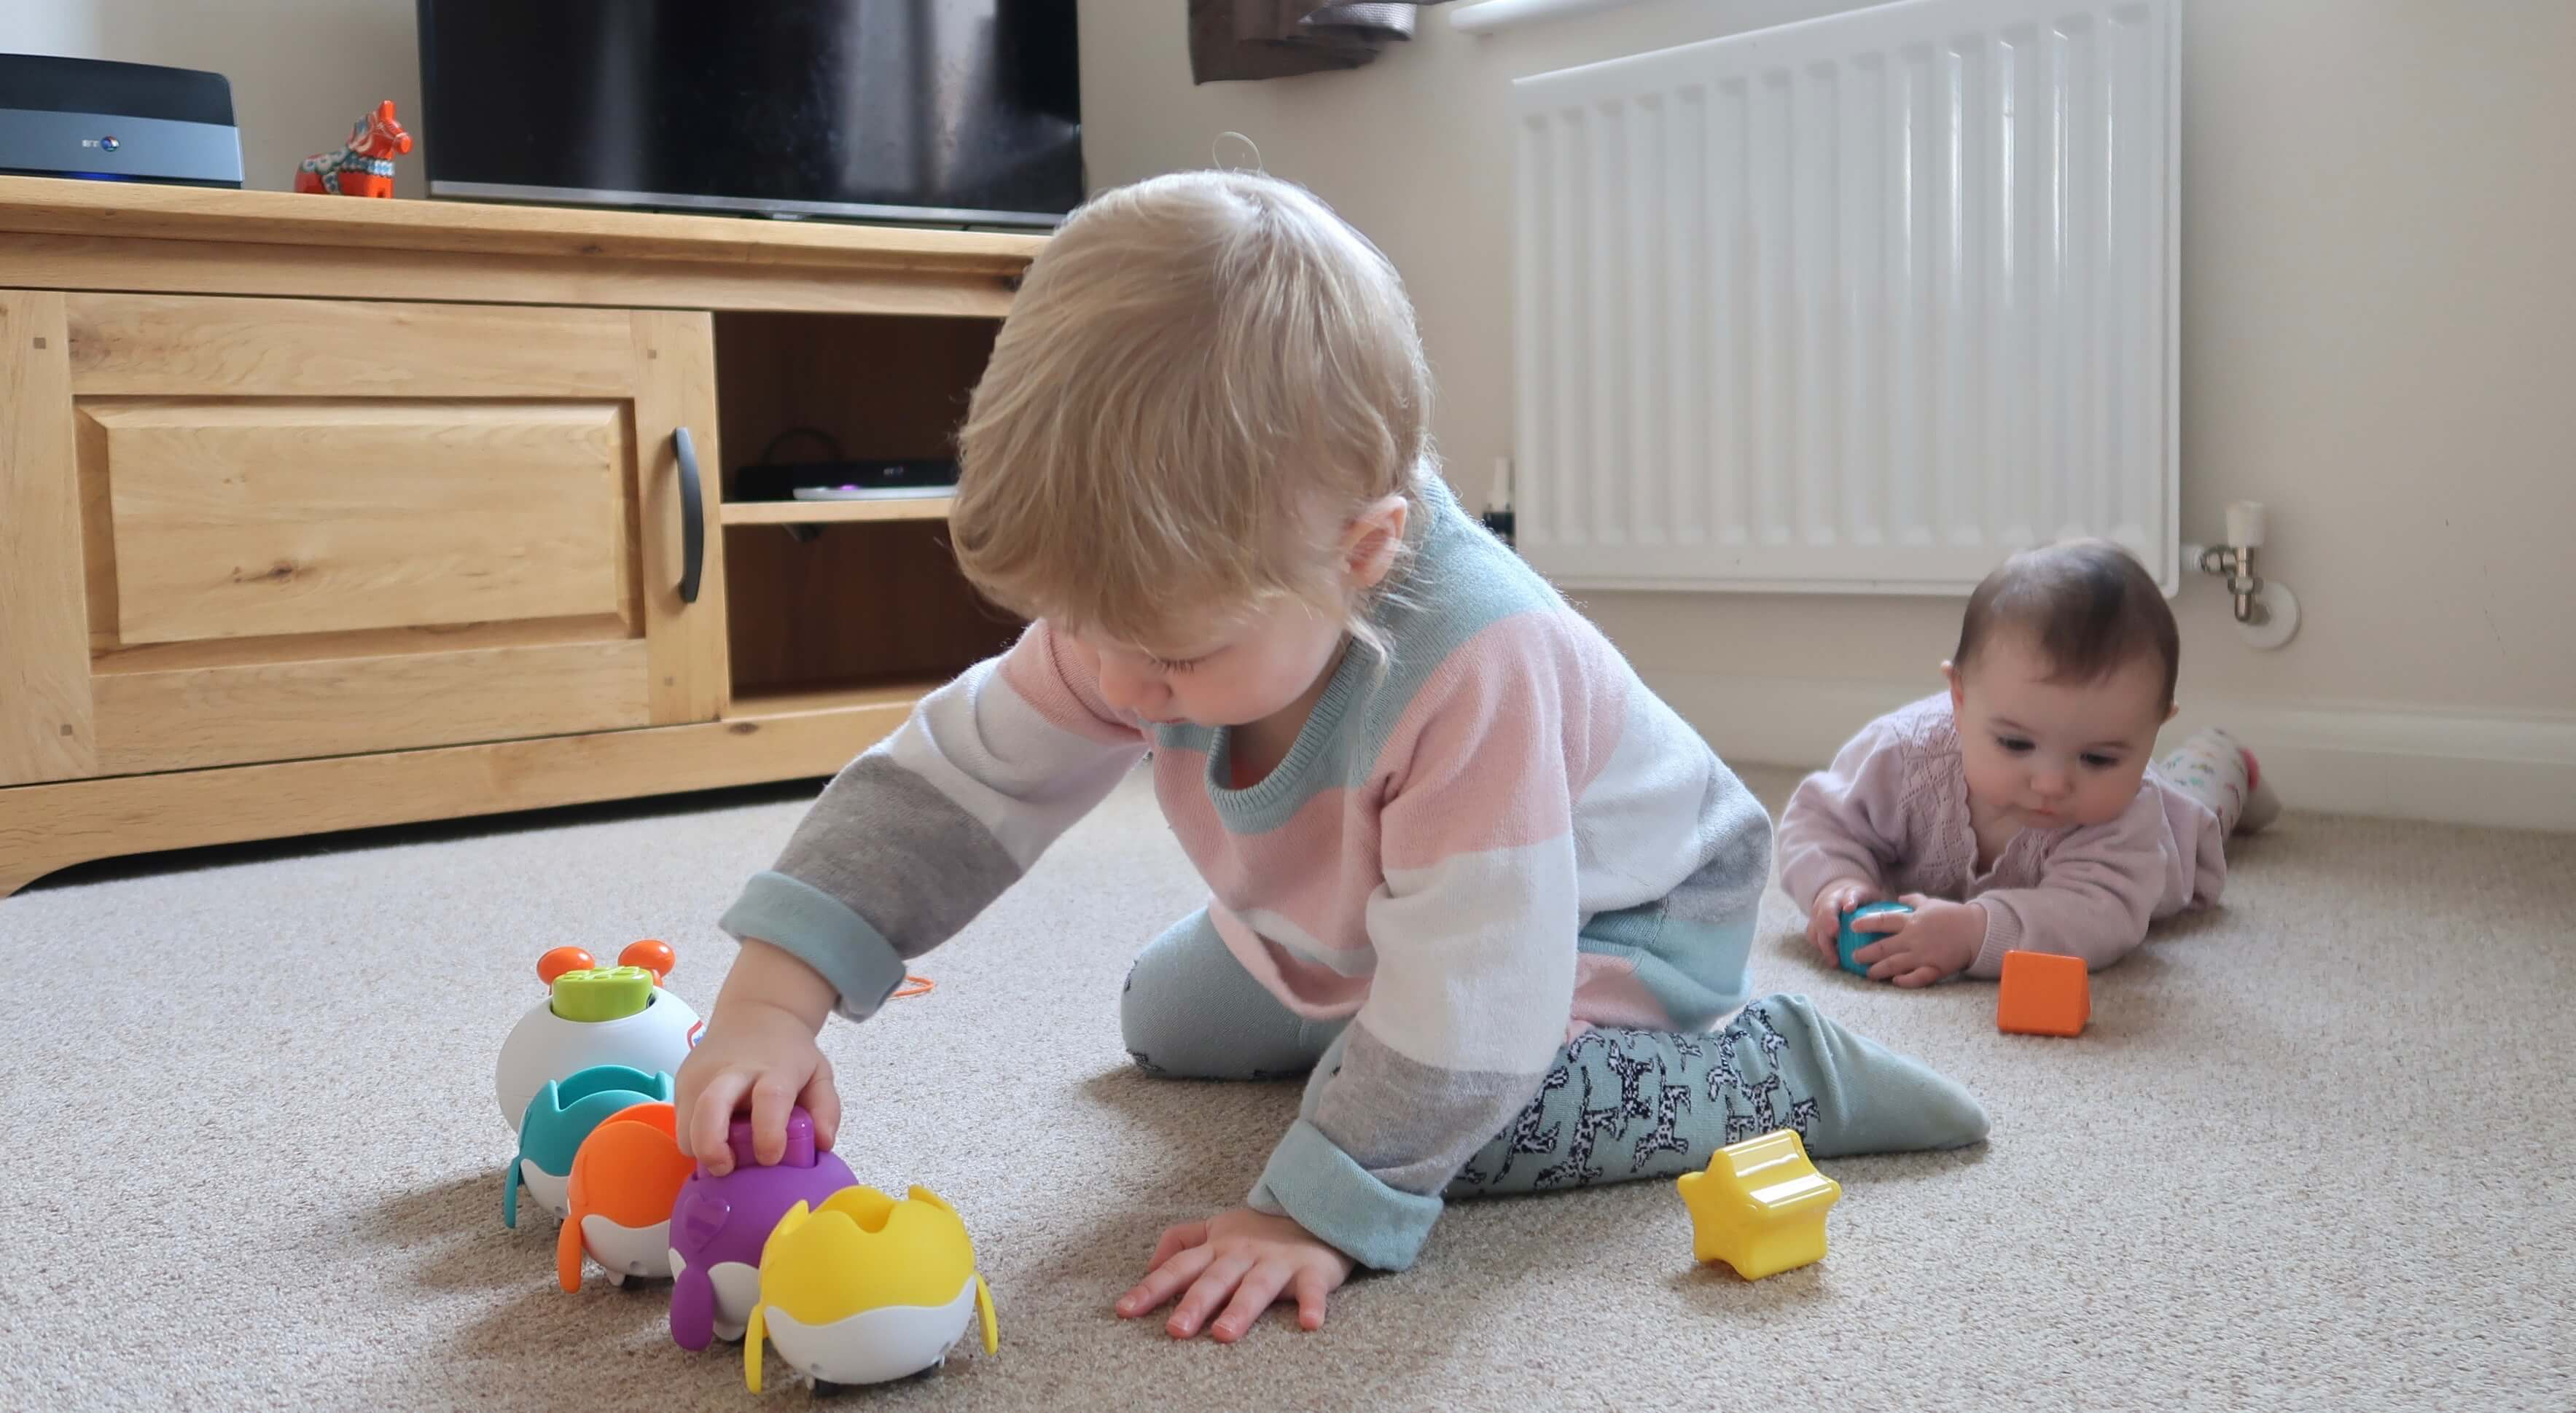 Little Tikes Fantastic Firsts Singing Sorter Review - M puts shapes into the sorter as B plays with some of the pieces